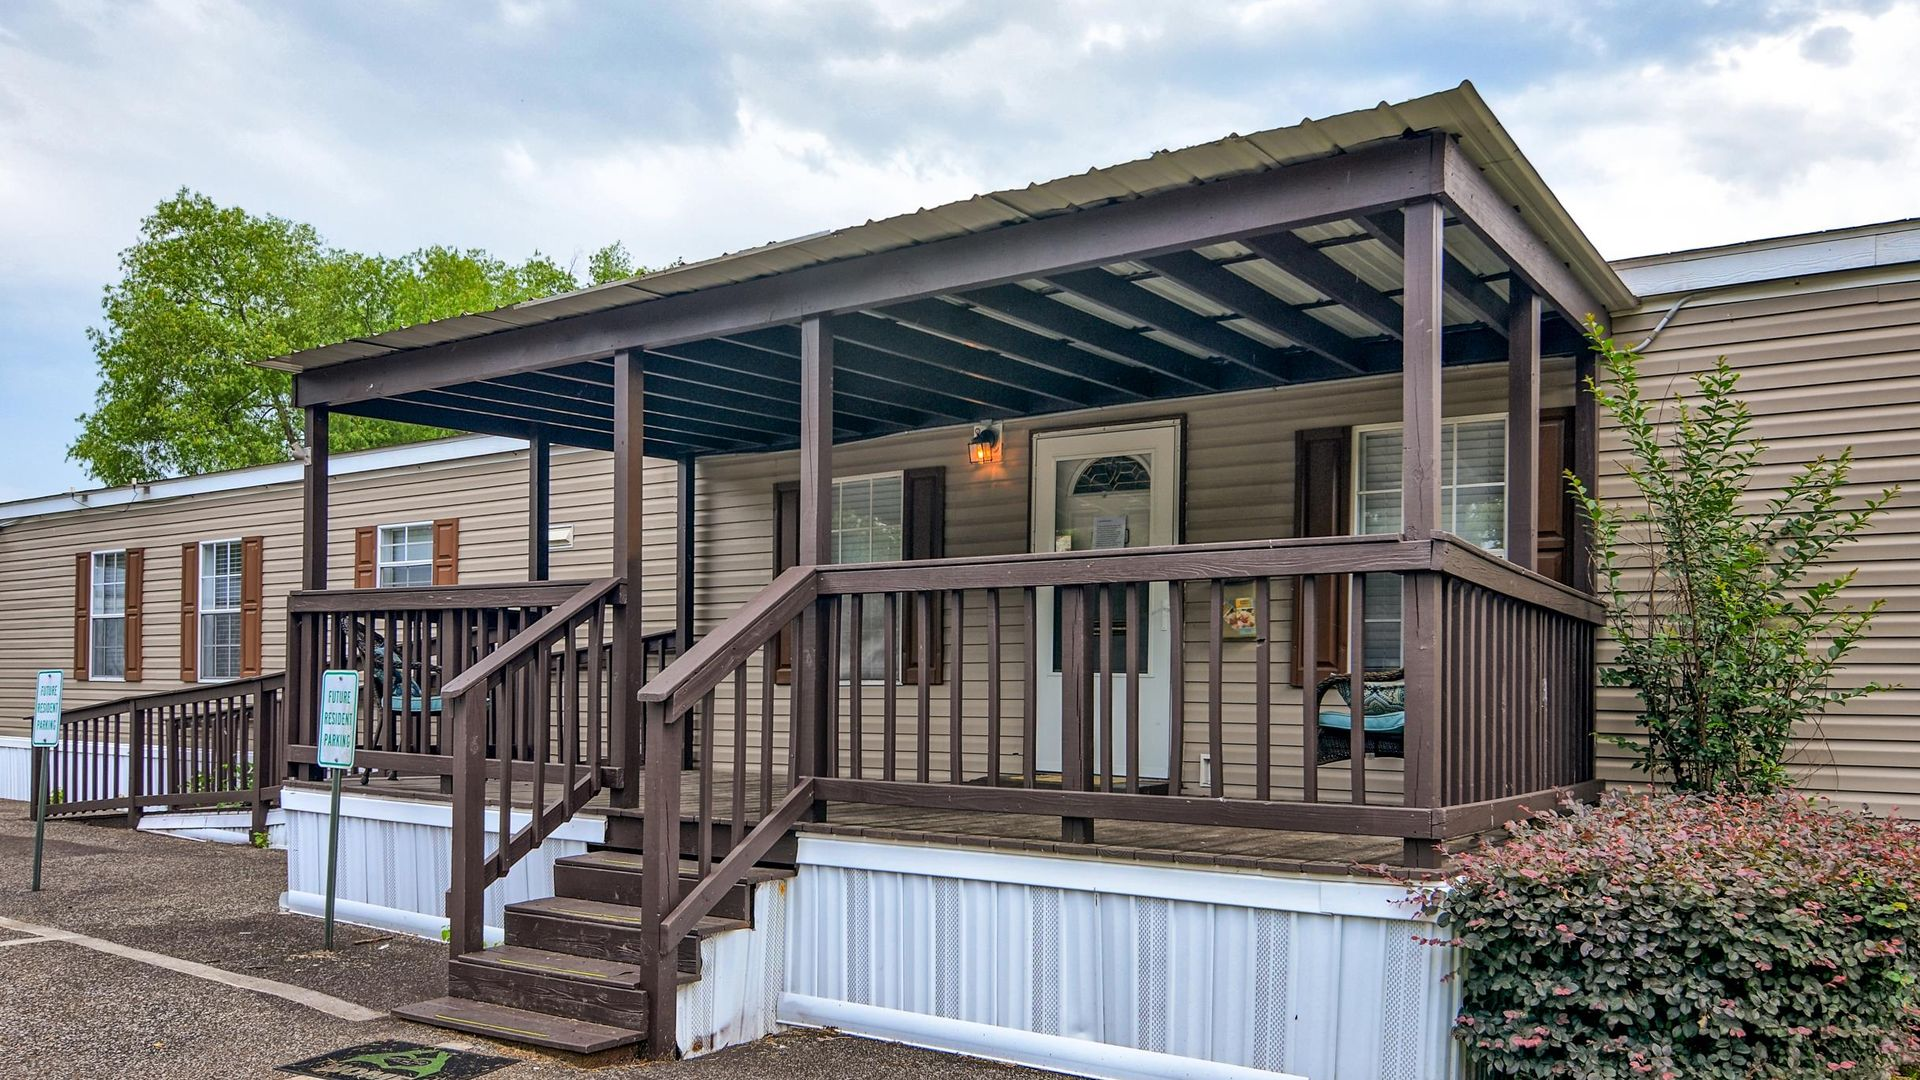 Tennessee Pet Friendly Apartments & Houses For Rent - 978